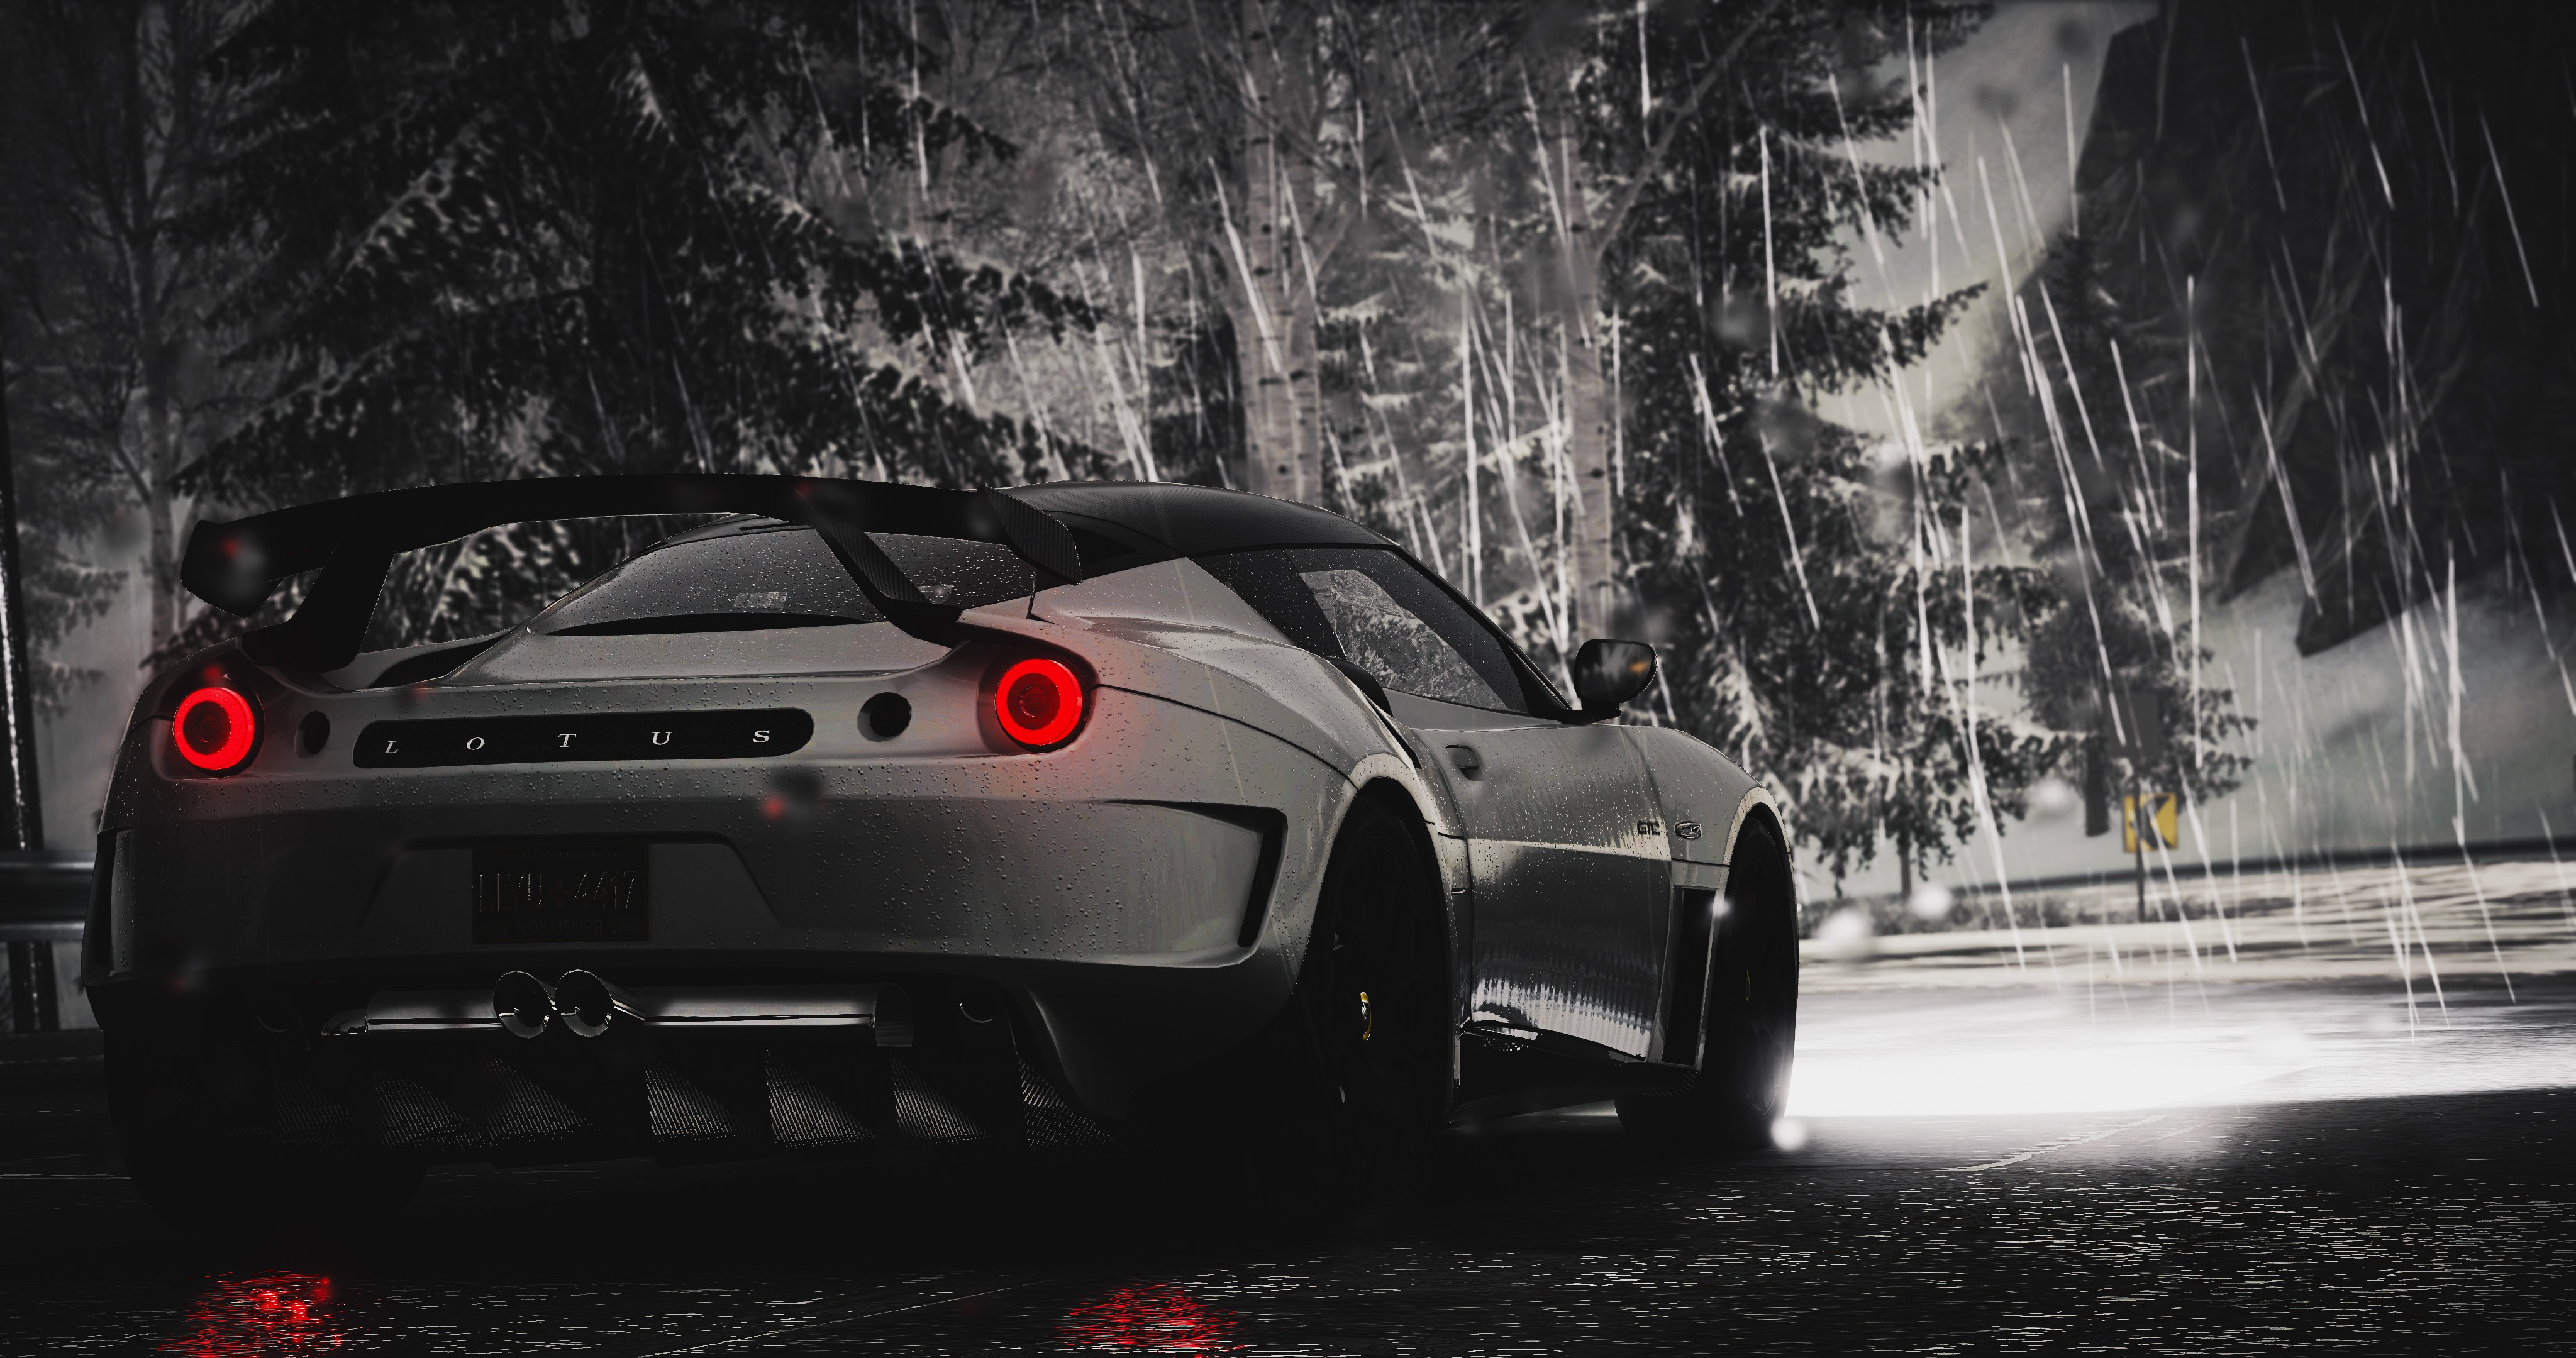 The Crew Lotus Cars 4k, HD Games, 4k Wallpapers, Images ...